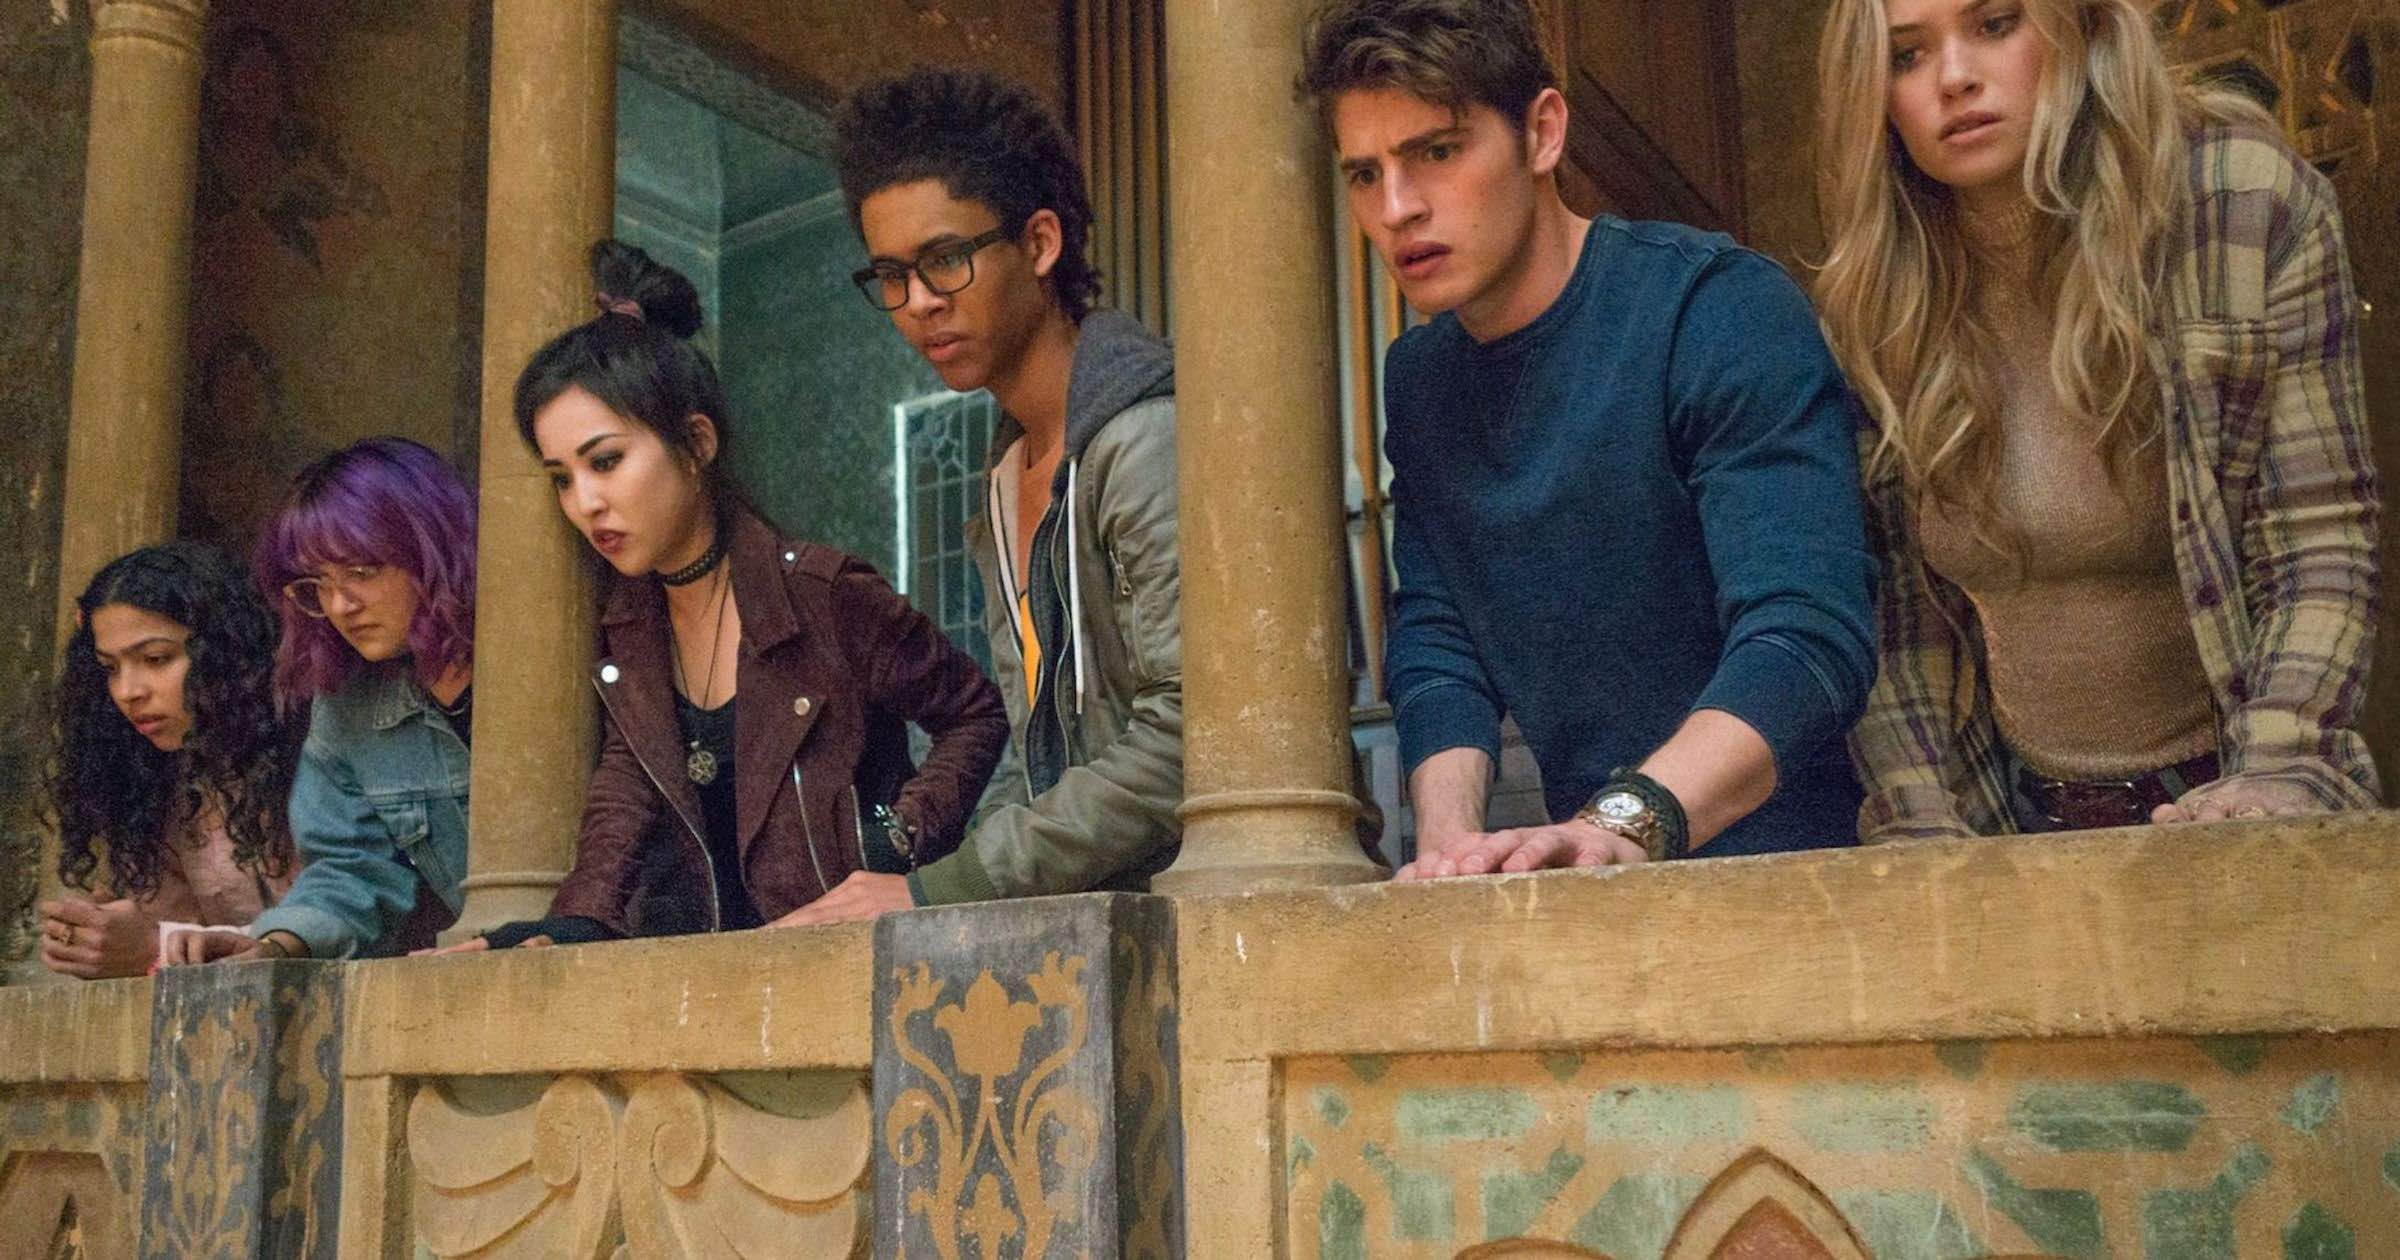 Runaways follows in the footsteps of Spider-Man Homecoming: a teenage drama that also happens to include superpowers.